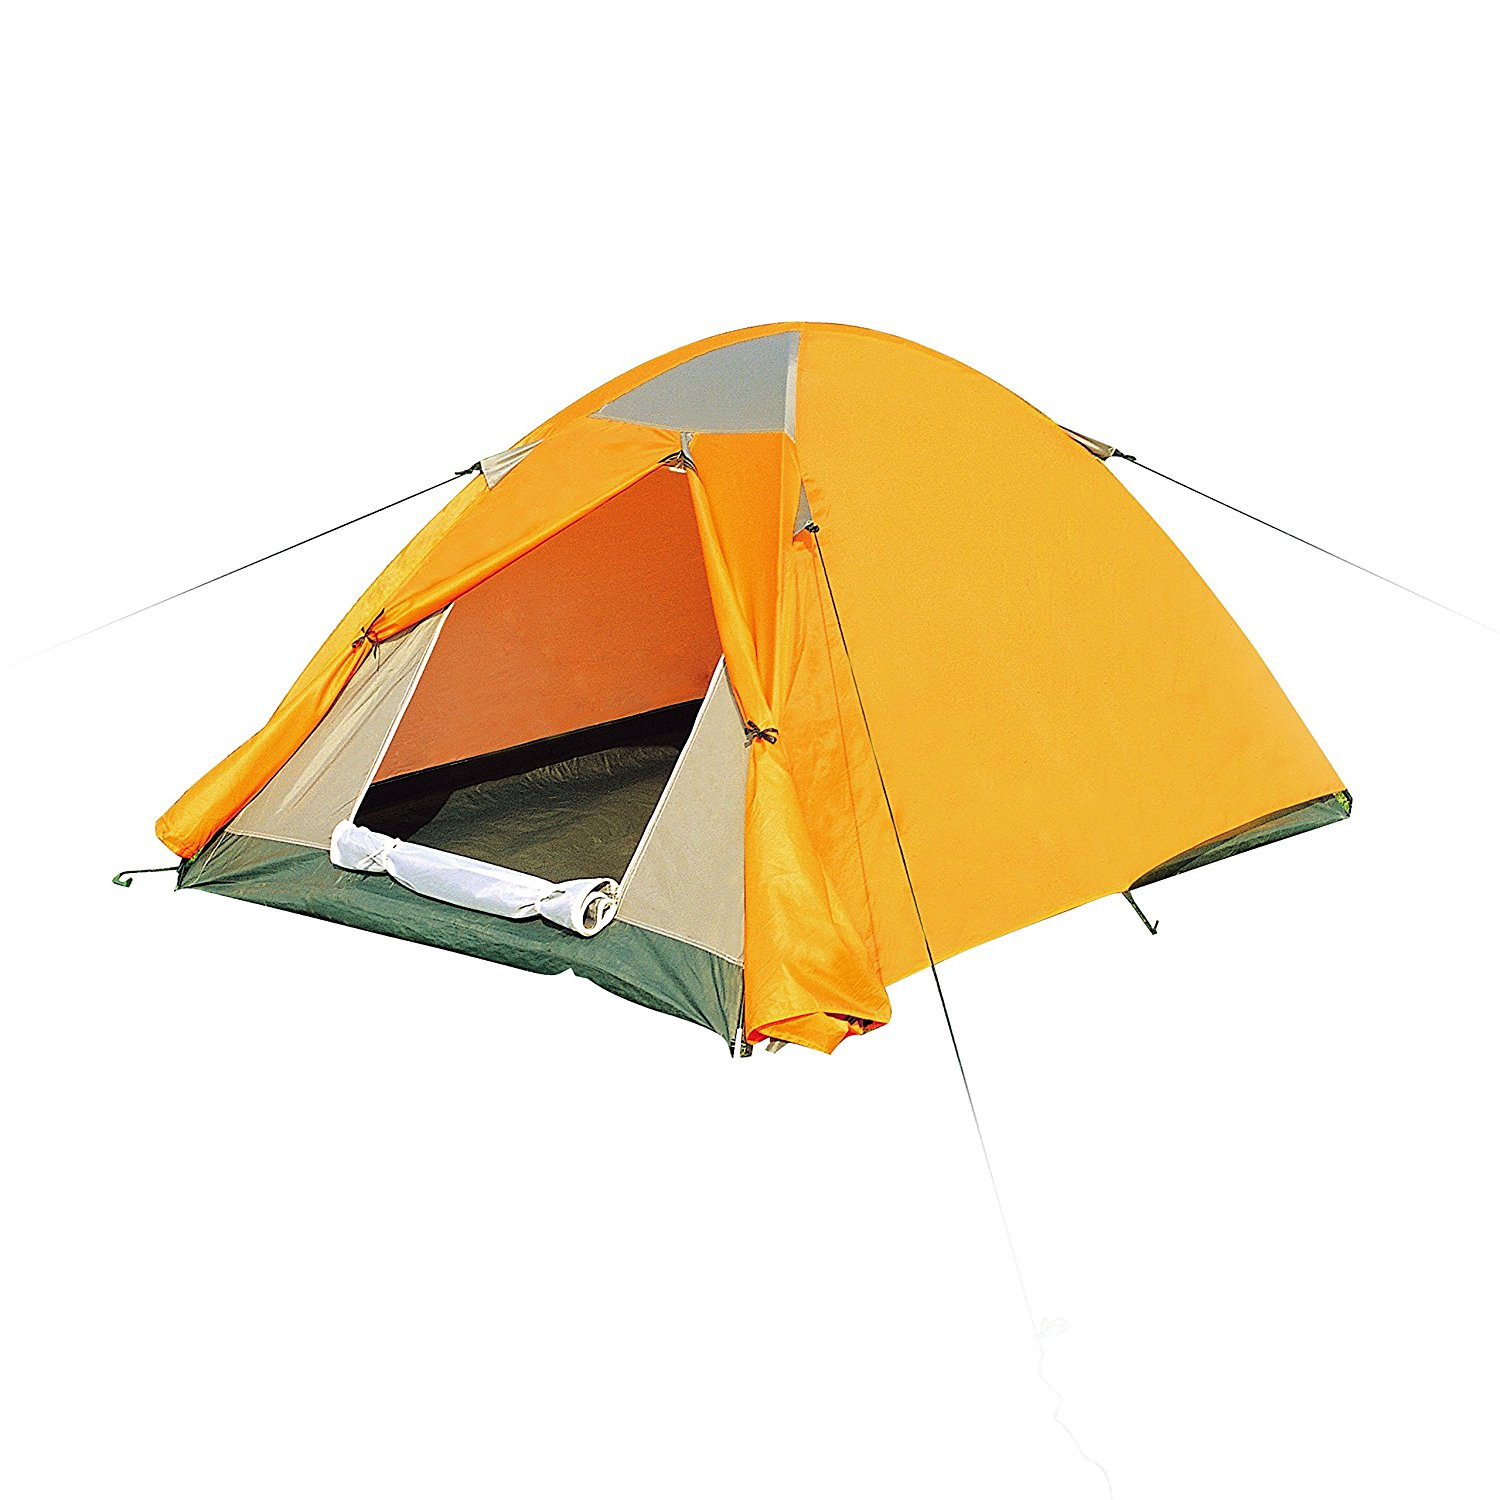 Camping STAN pre 2 osoby BESTWAY 211x150x109cm 67415